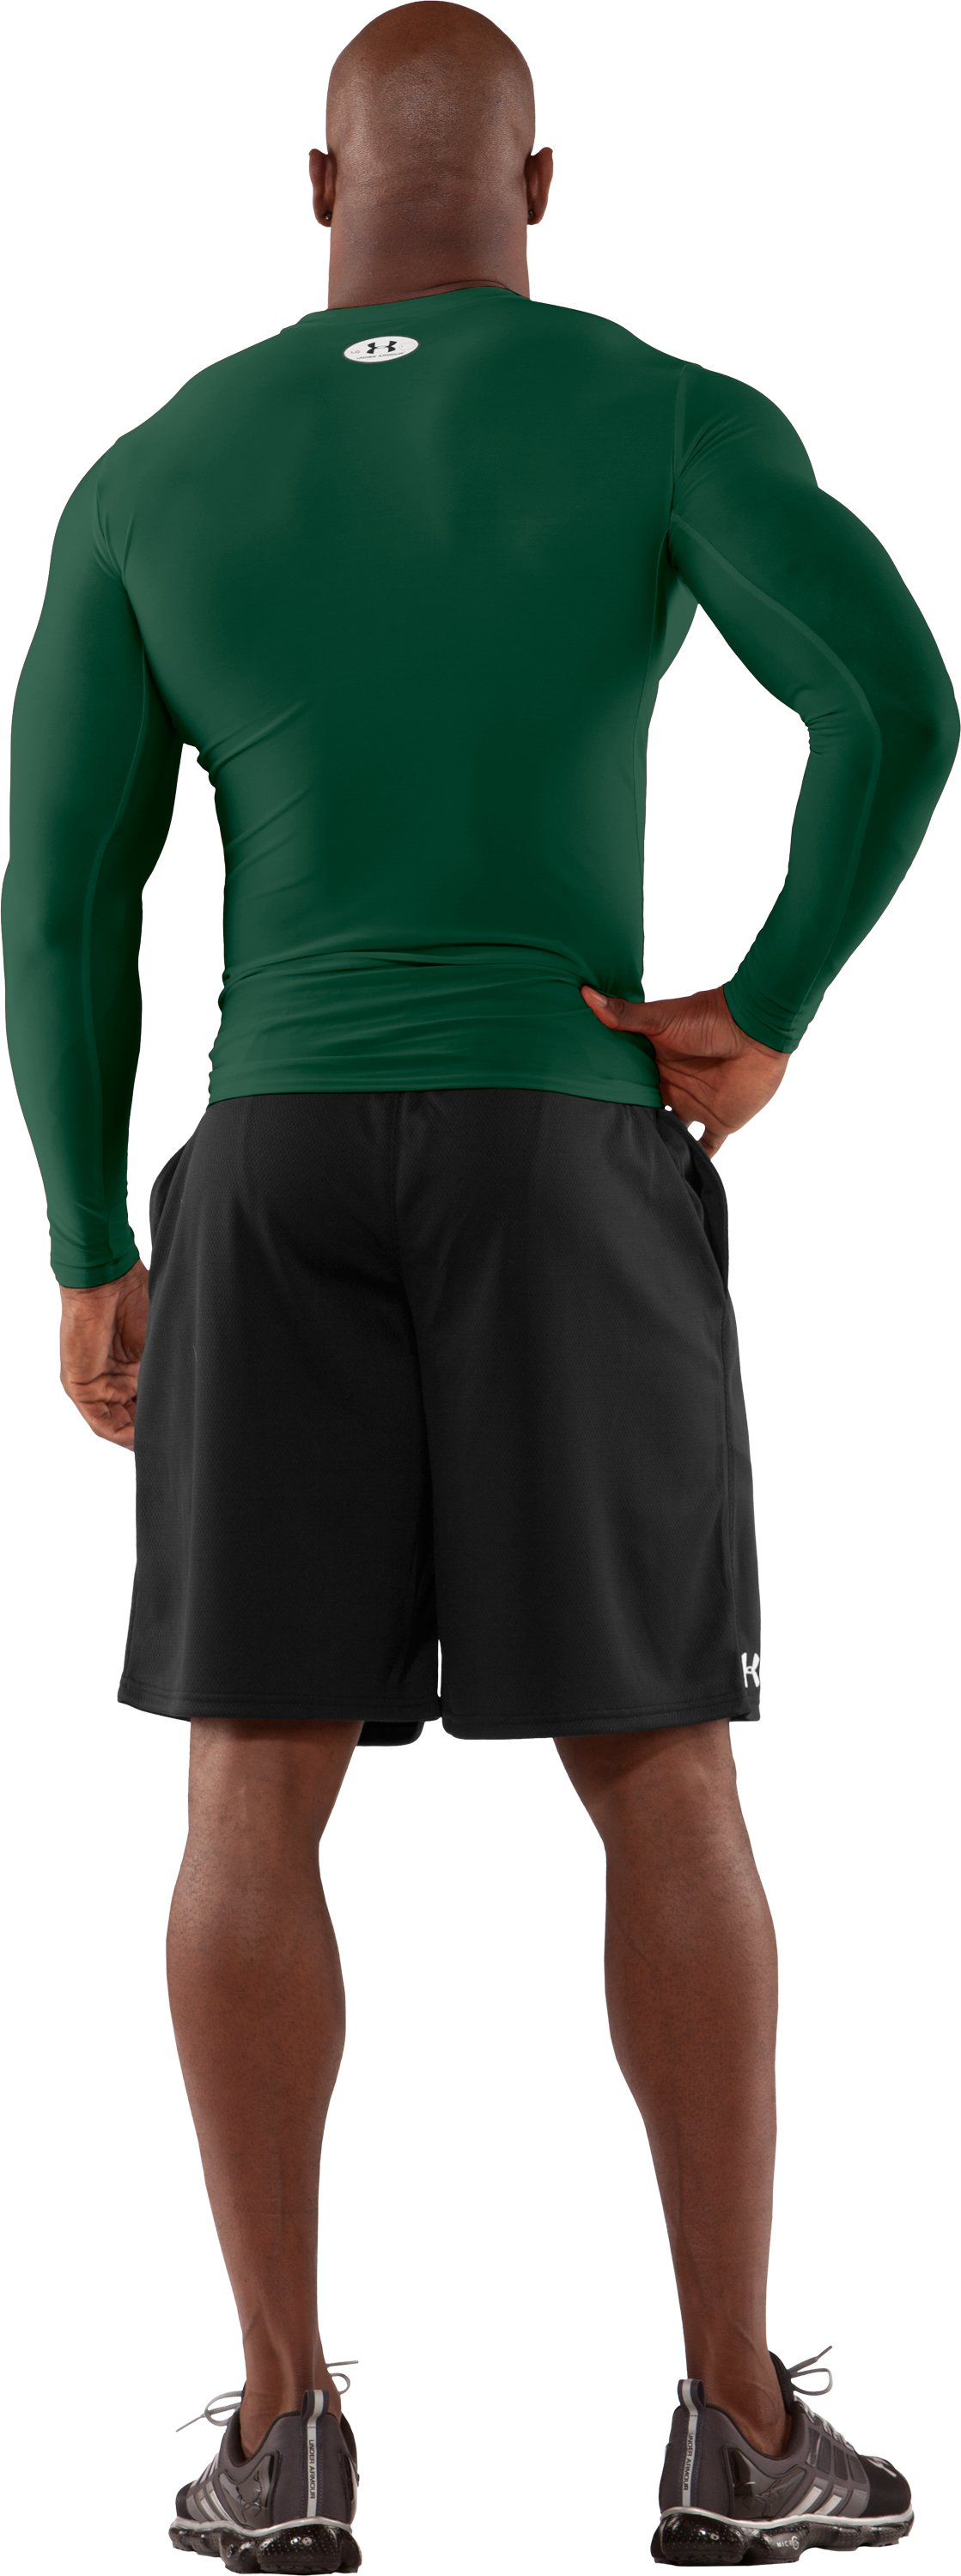 Men's HeatGear® Compression Long Sleeve T-Shirt, Forest Green, Back